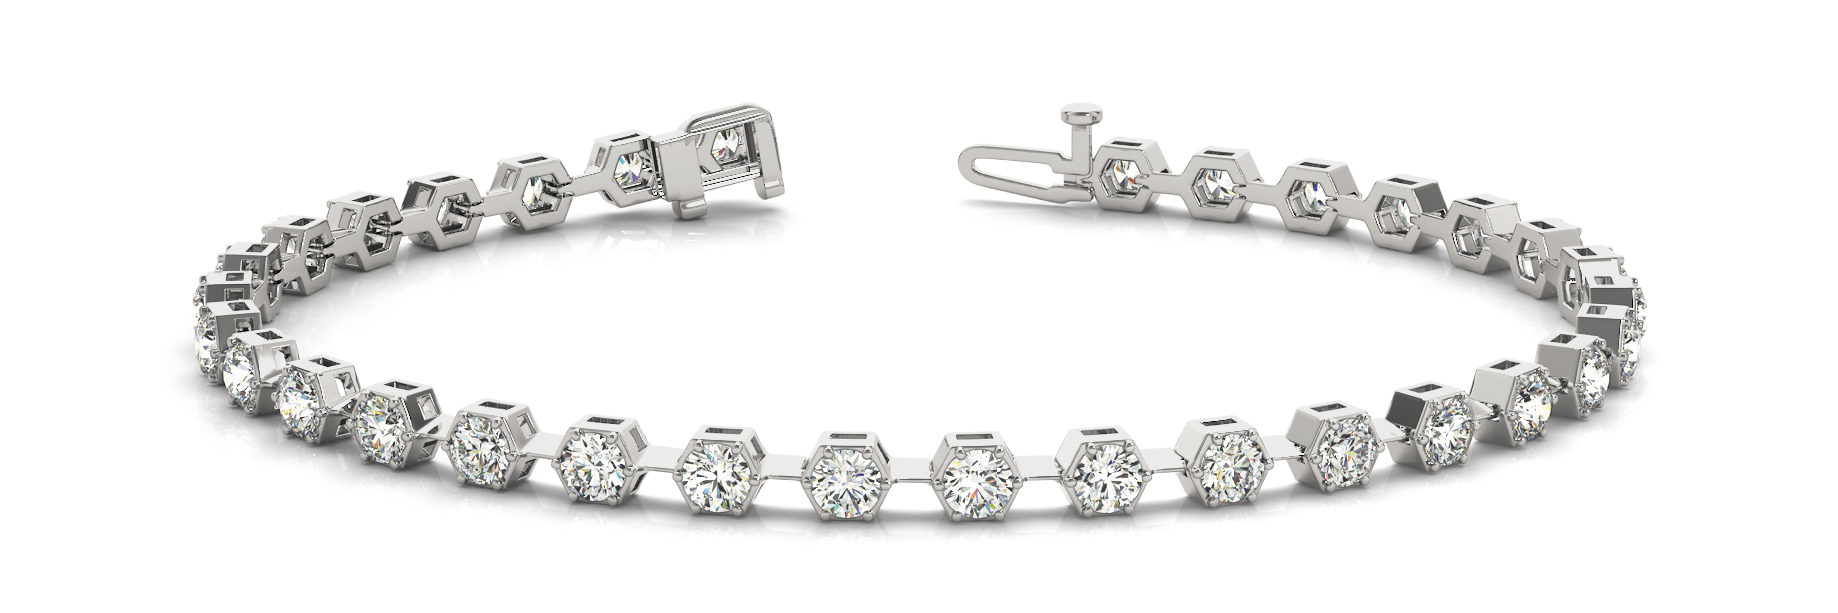 1.6 Carat Round Diamond Hexagon Bracelet